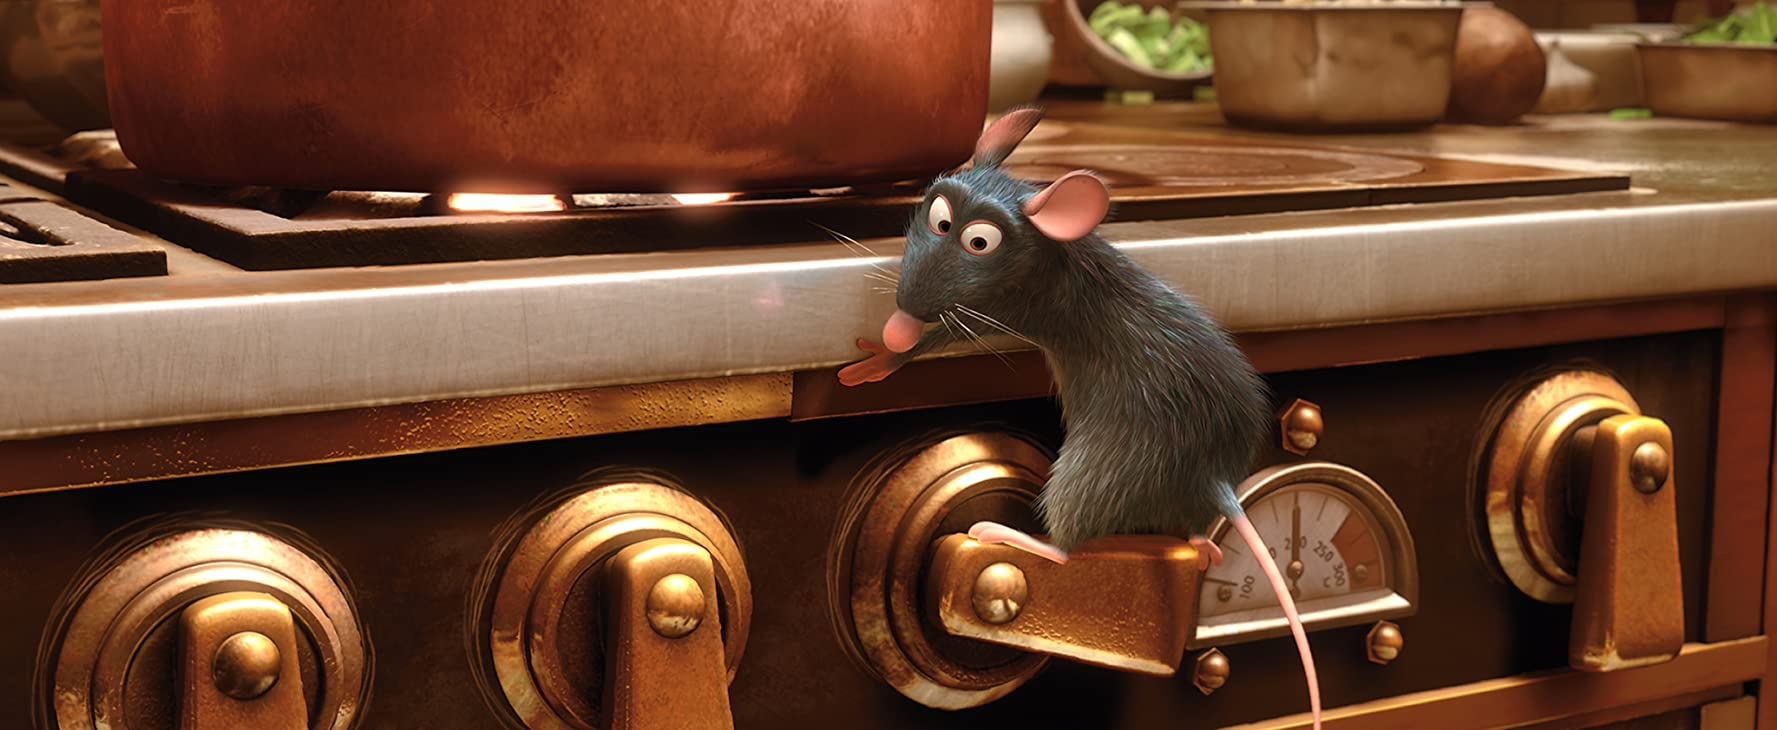 Patton Oswalt in Pixar's Ratatouille (2007)